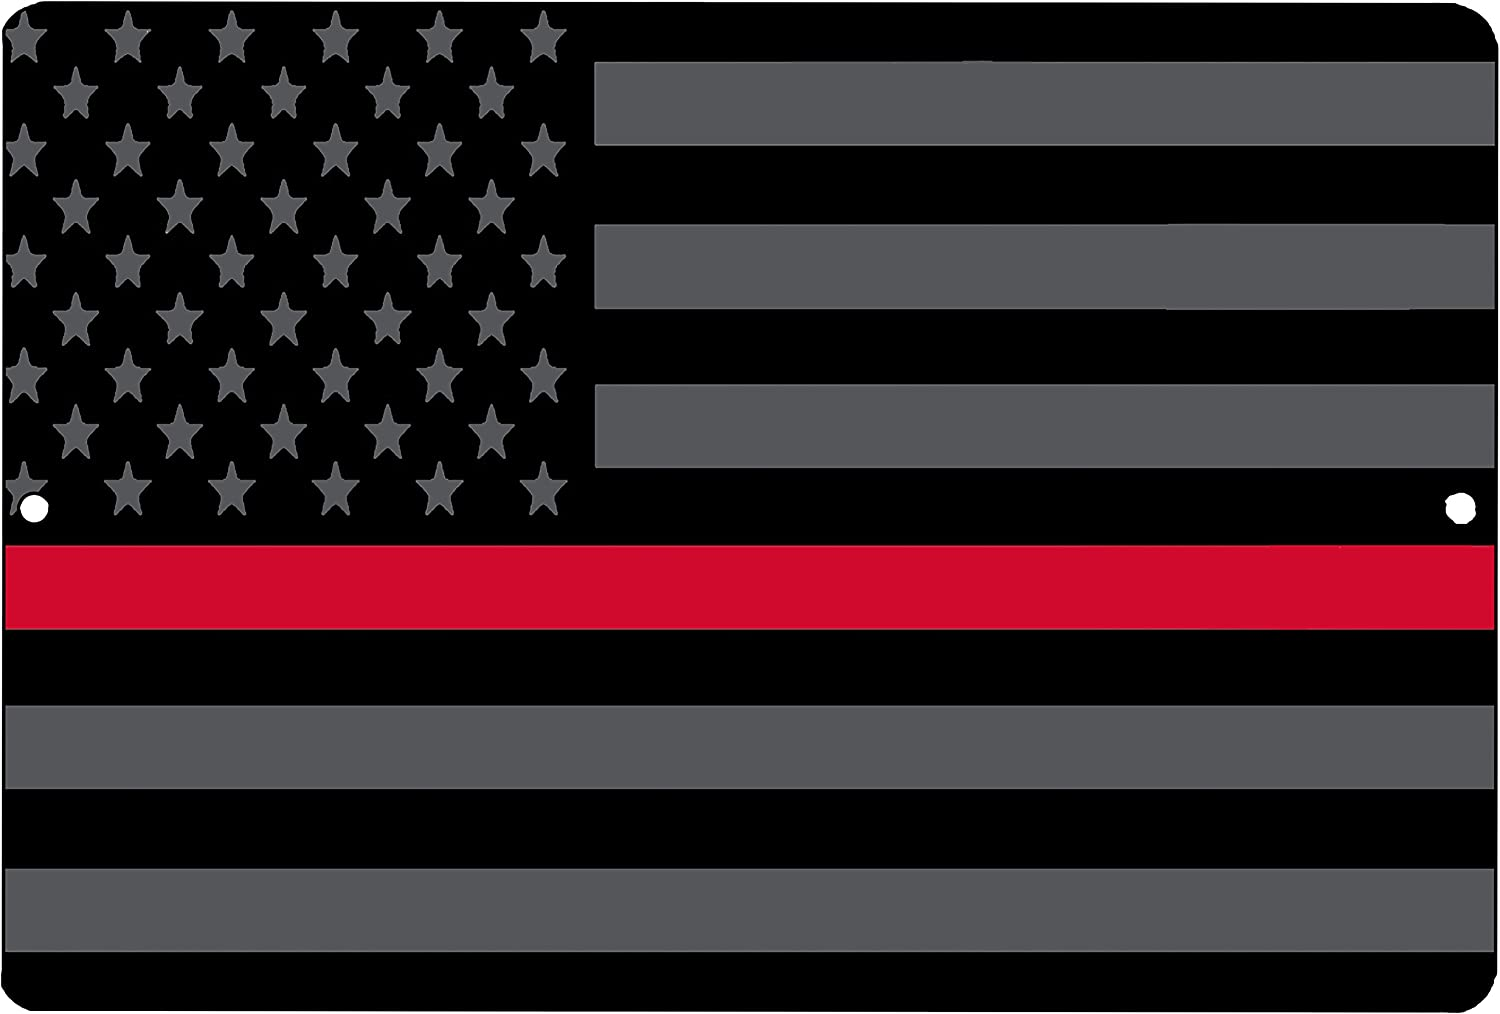 Rogue River Tactical Thin Red Line Firefighter Flag Metal Tin Sign Wall Decor Man Cave Bar Support Fire Fighters Subdued